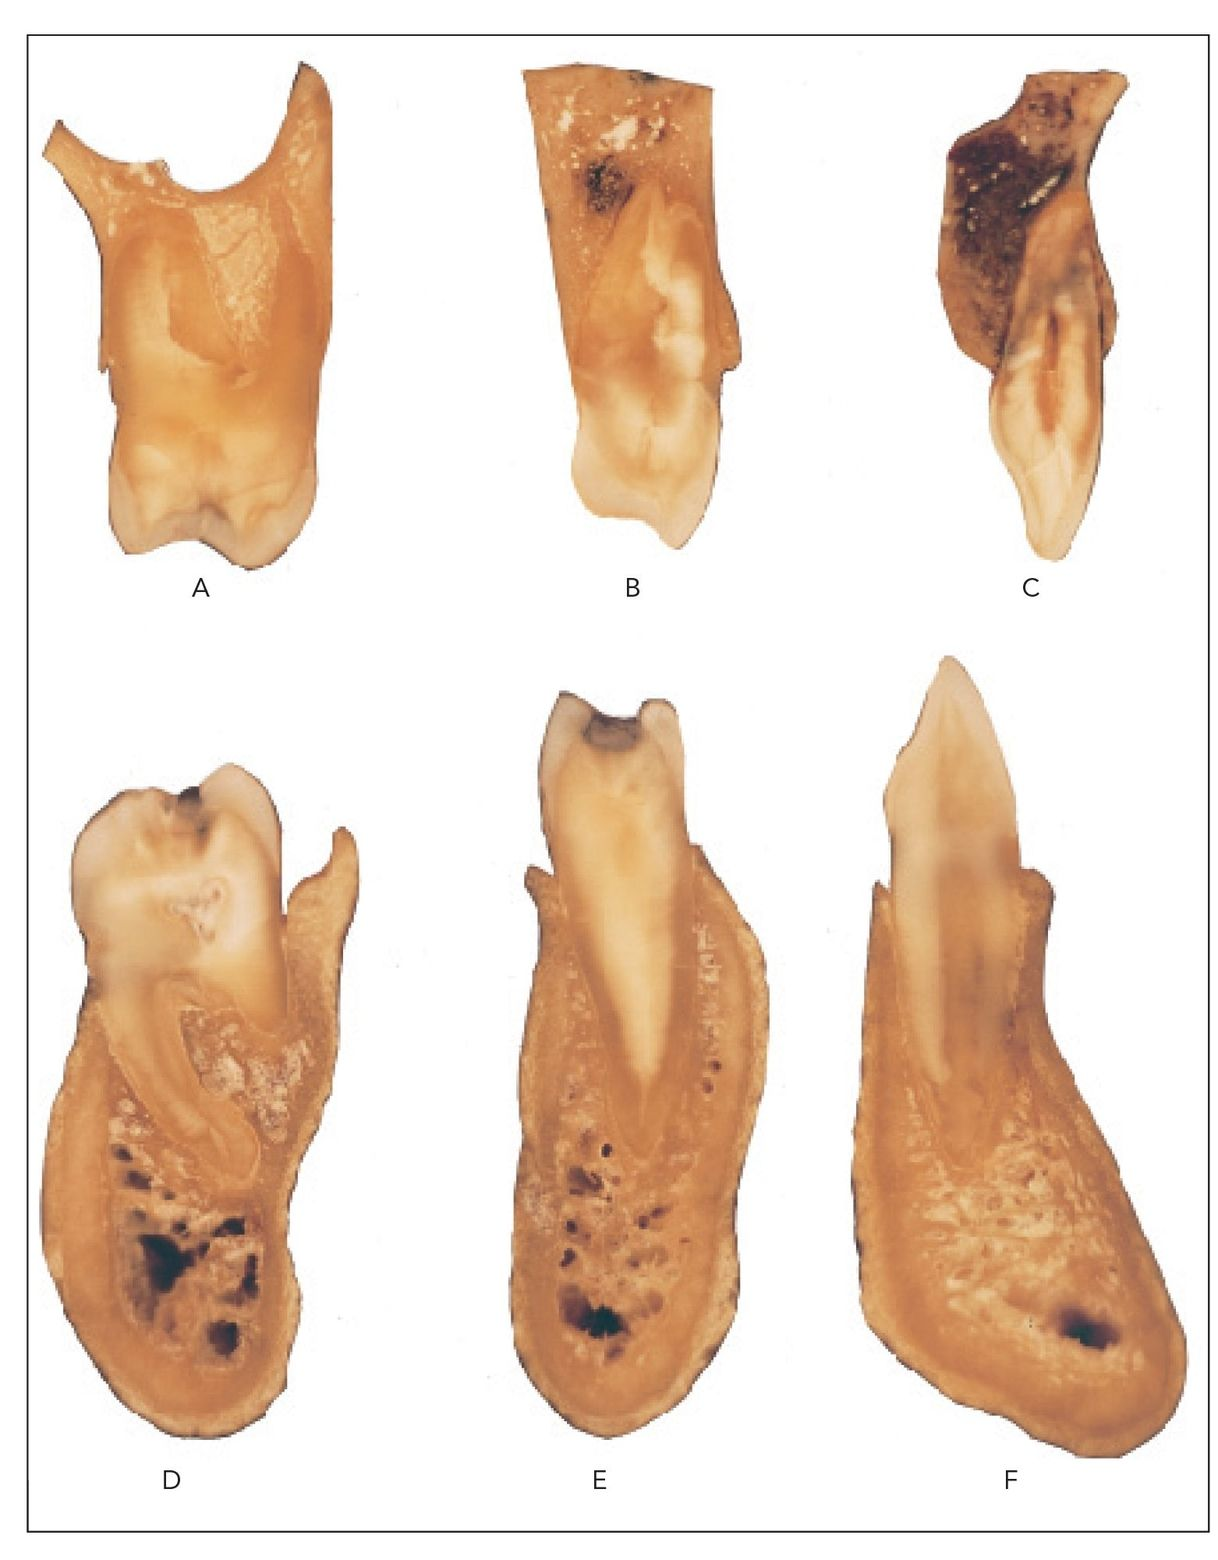 secondary bone grafting in alveolar clefts thesis Evaluation of secondary bone grafting of the alveolar cleft in adult cleft lip and palate patients article in asian journal of oral and maxillofacial surgery 24(2) may 2012 with 13 reads.